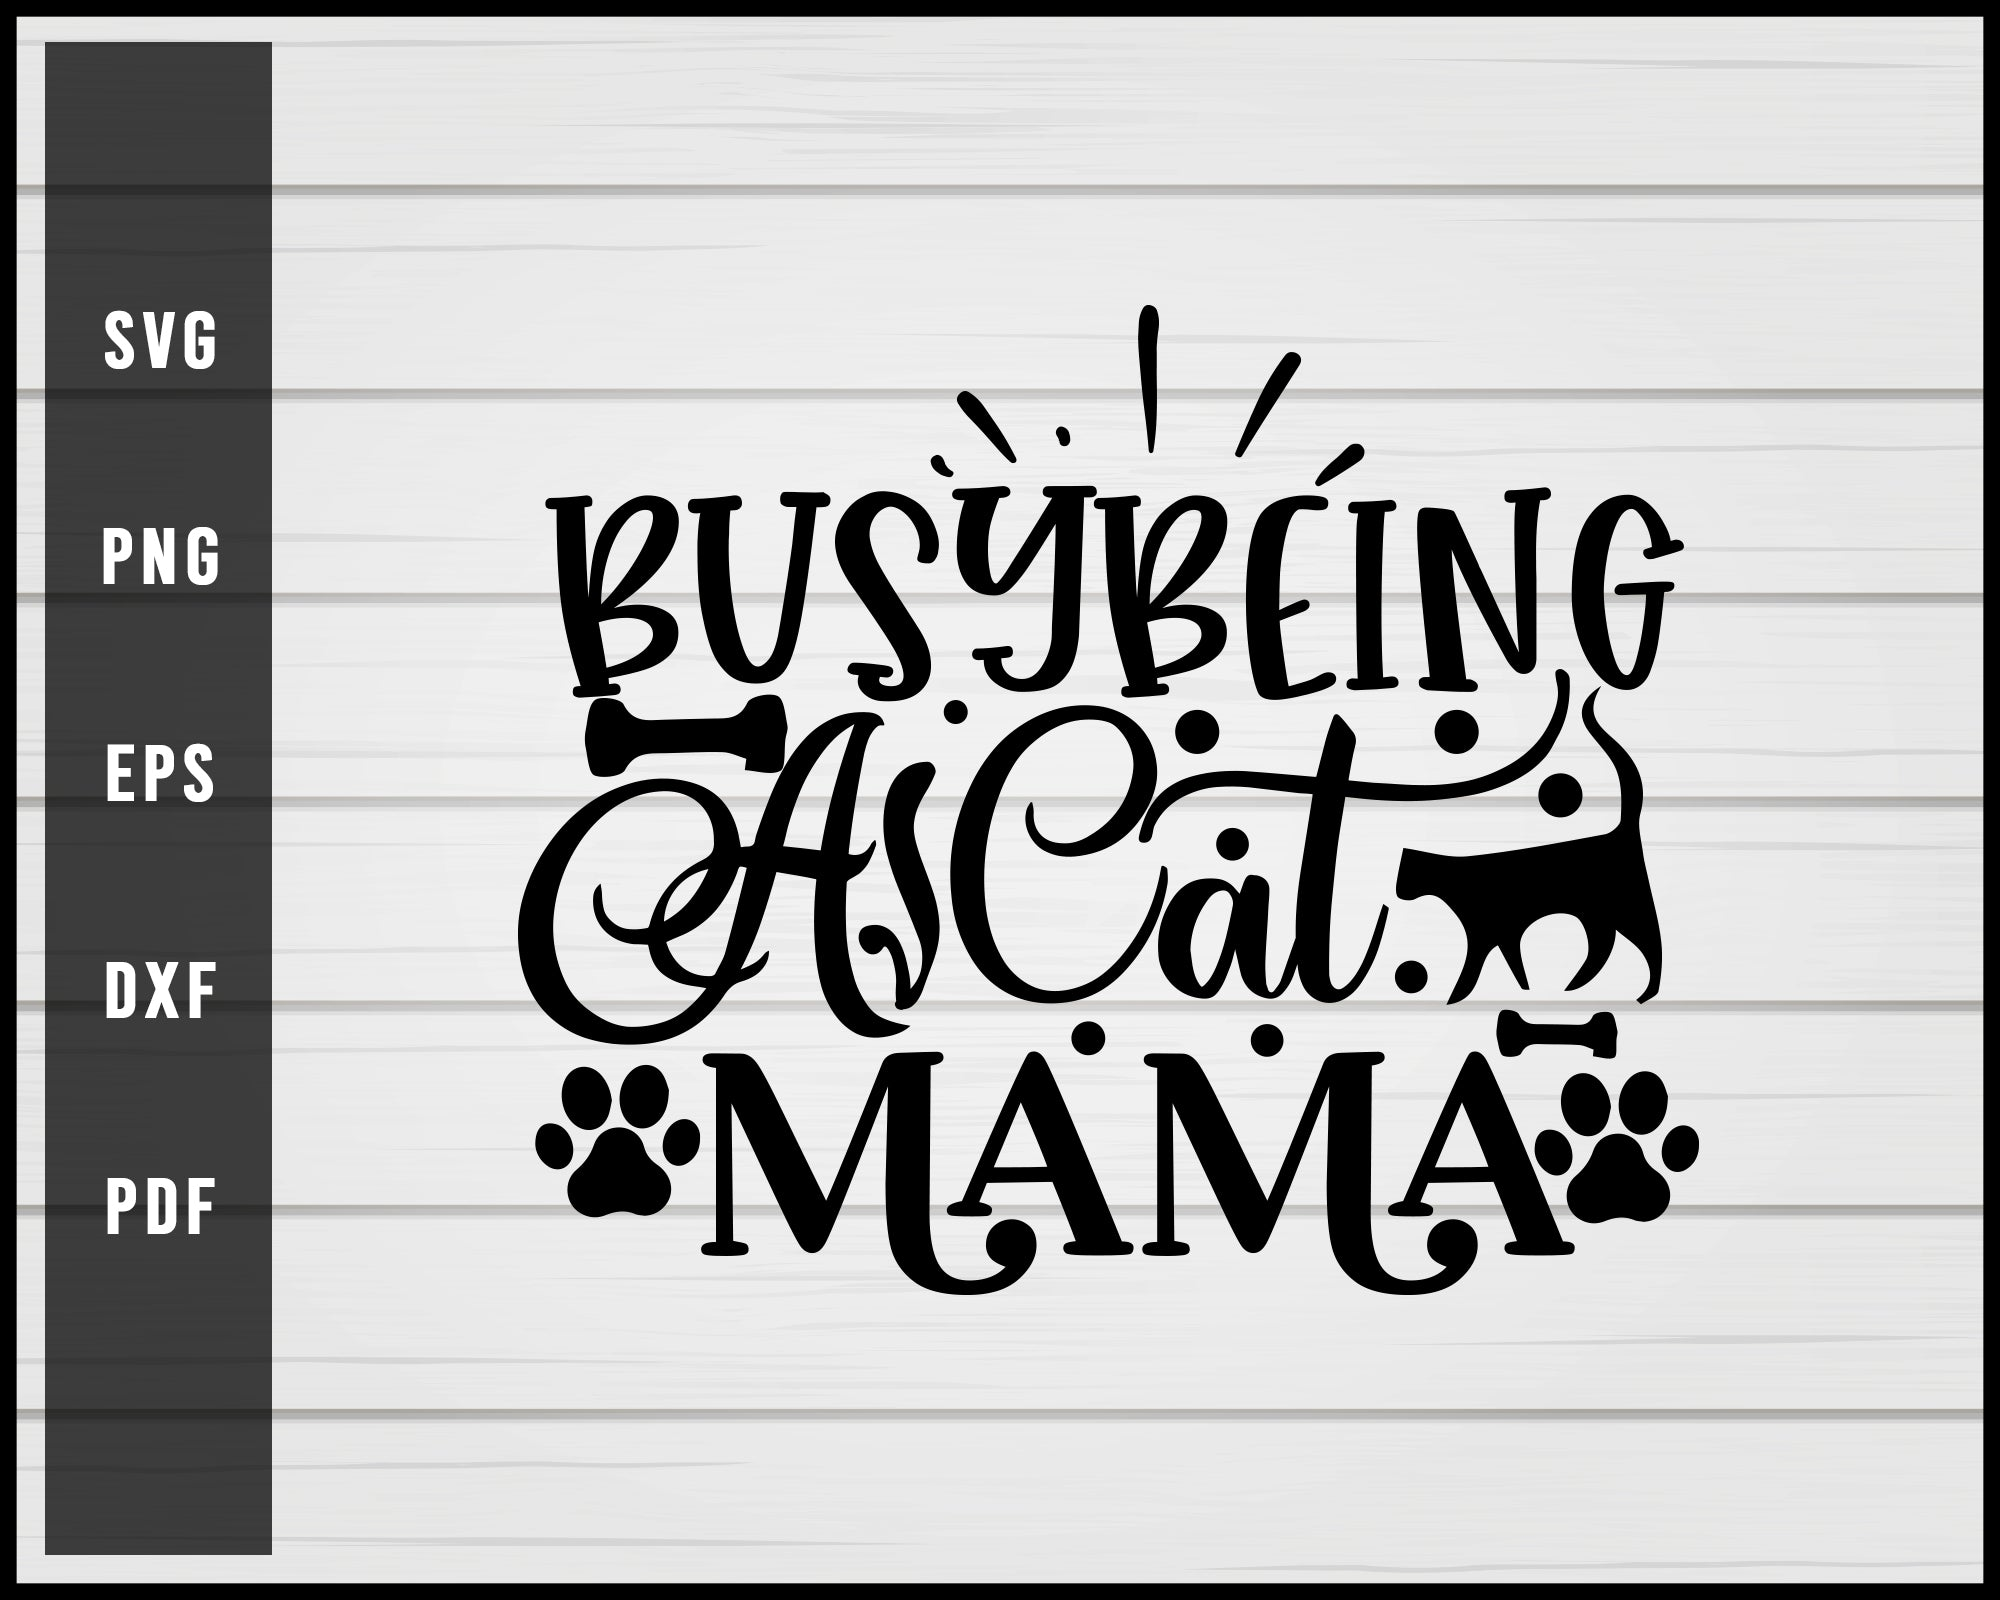 Busy Being A Cat Mama svg png Silhouette Designs For Cricut And Printable Files